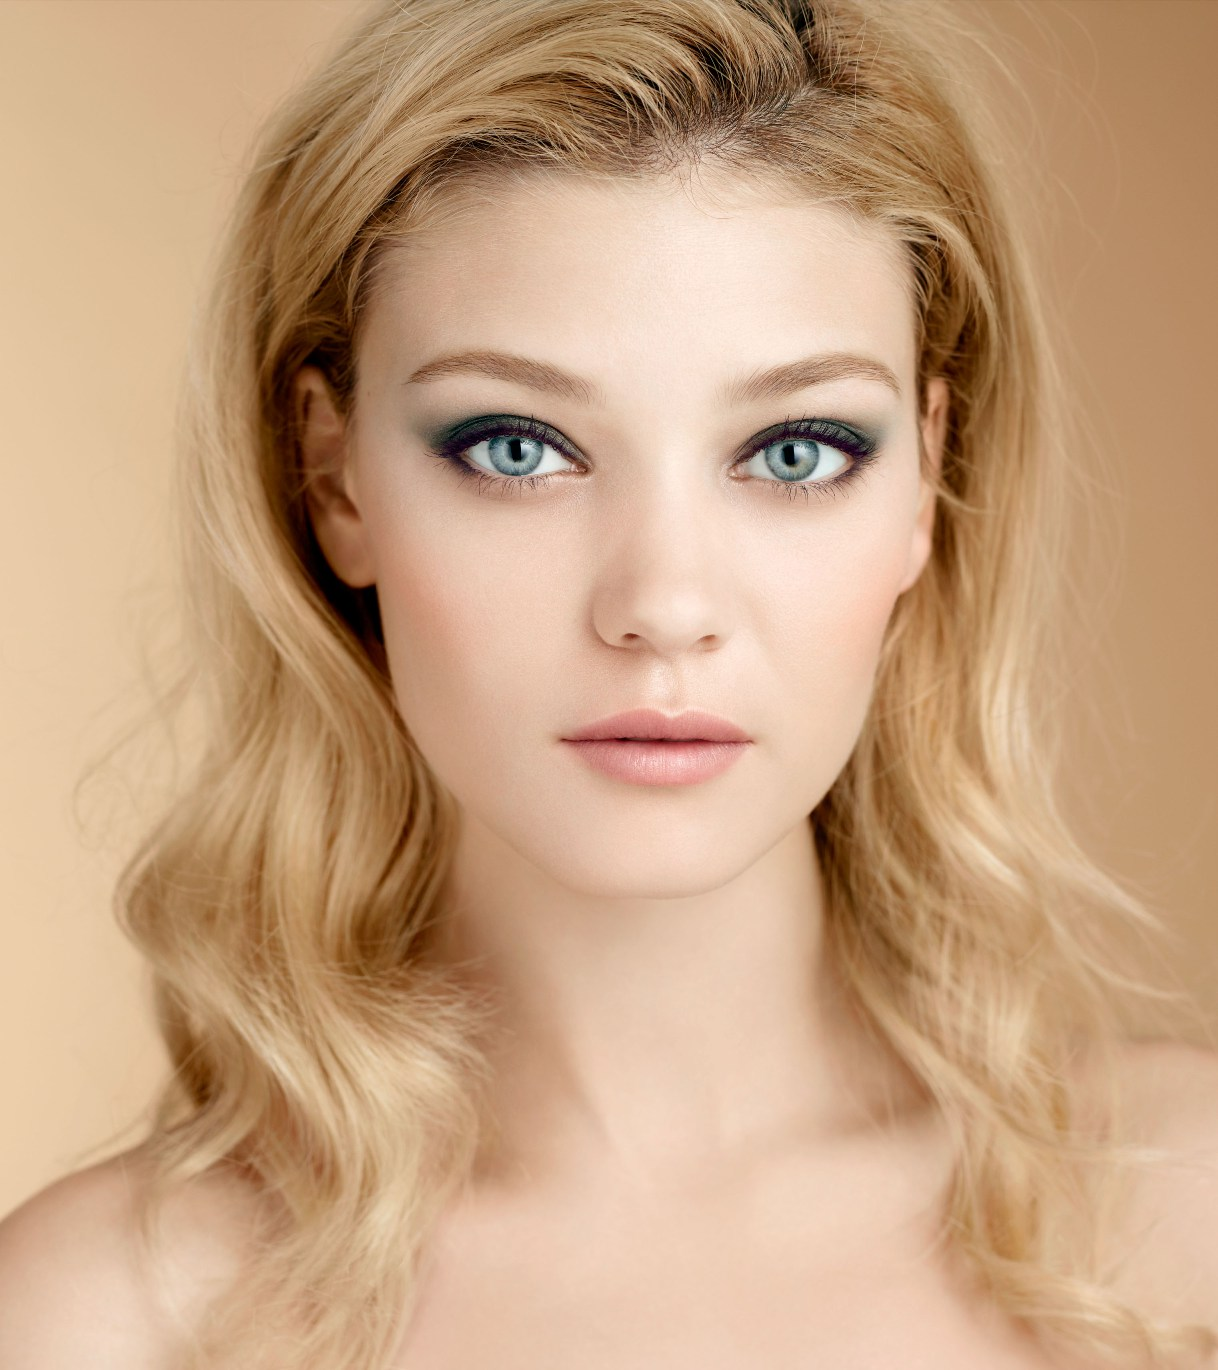 Natural Looking Eye Makeup For Wedding - The Best Makeup Tips and ...